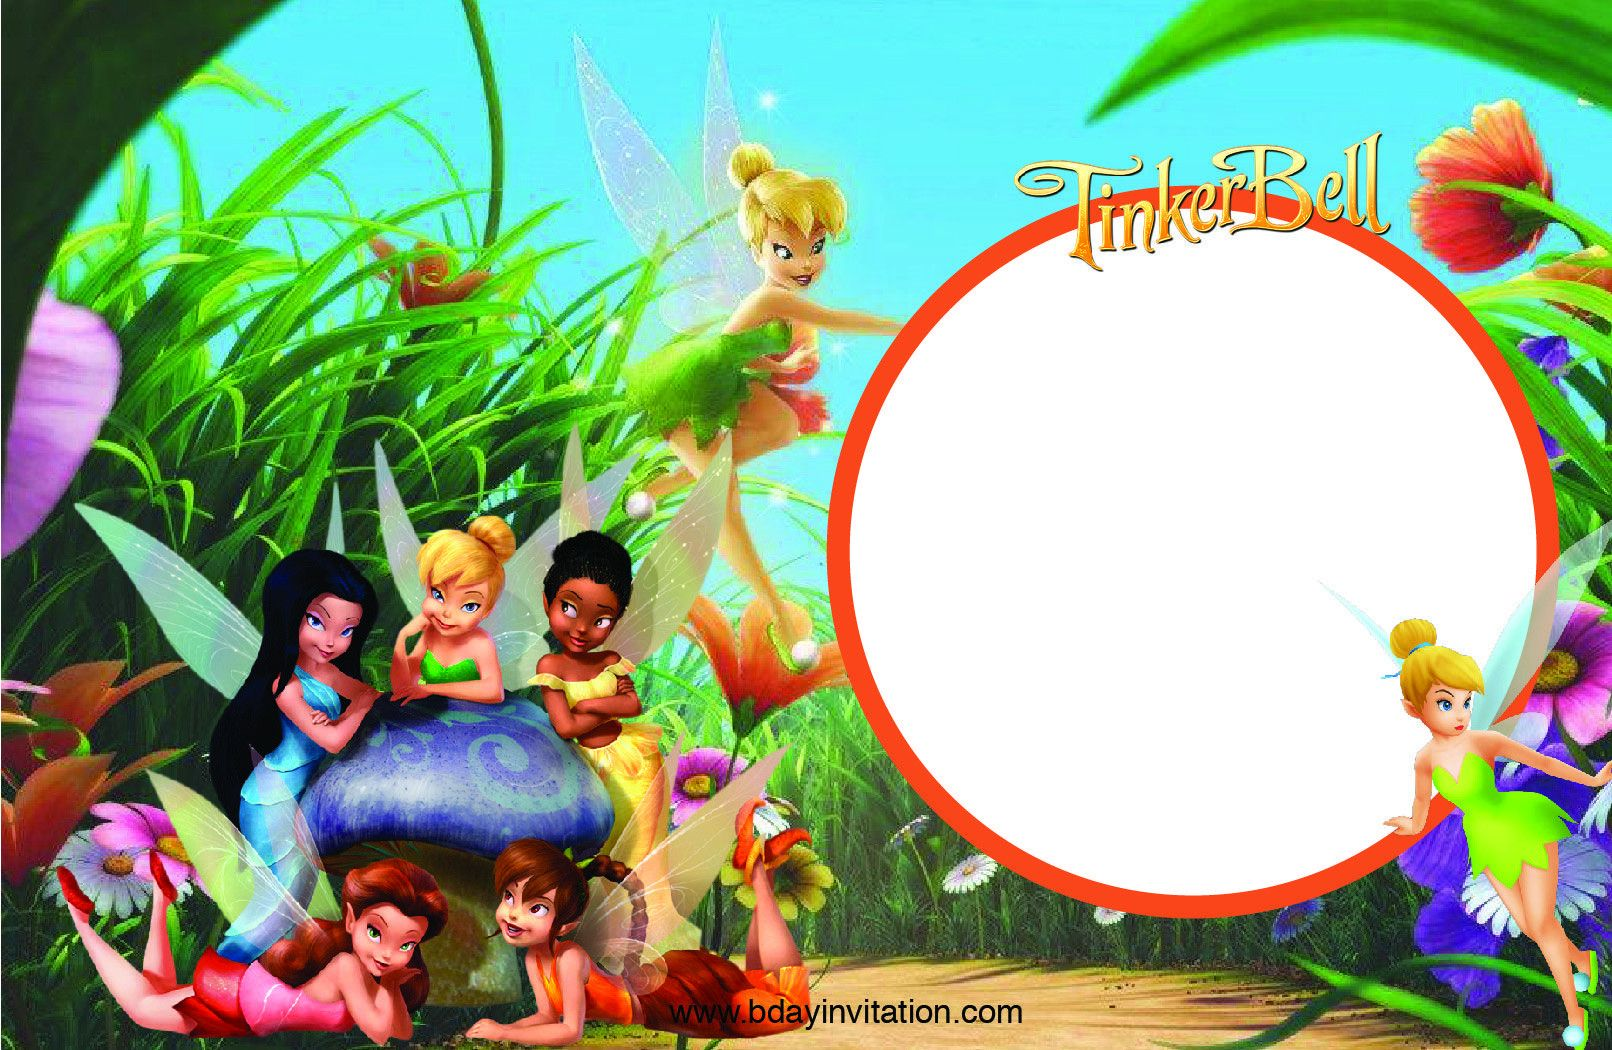 Tinkerbell Invitation Template Free Beautiful Awesome Free Printable Disney Tinkerbell Birthday Inv Tinkerbell Invitations Tinkerbell Free Invitation Templates